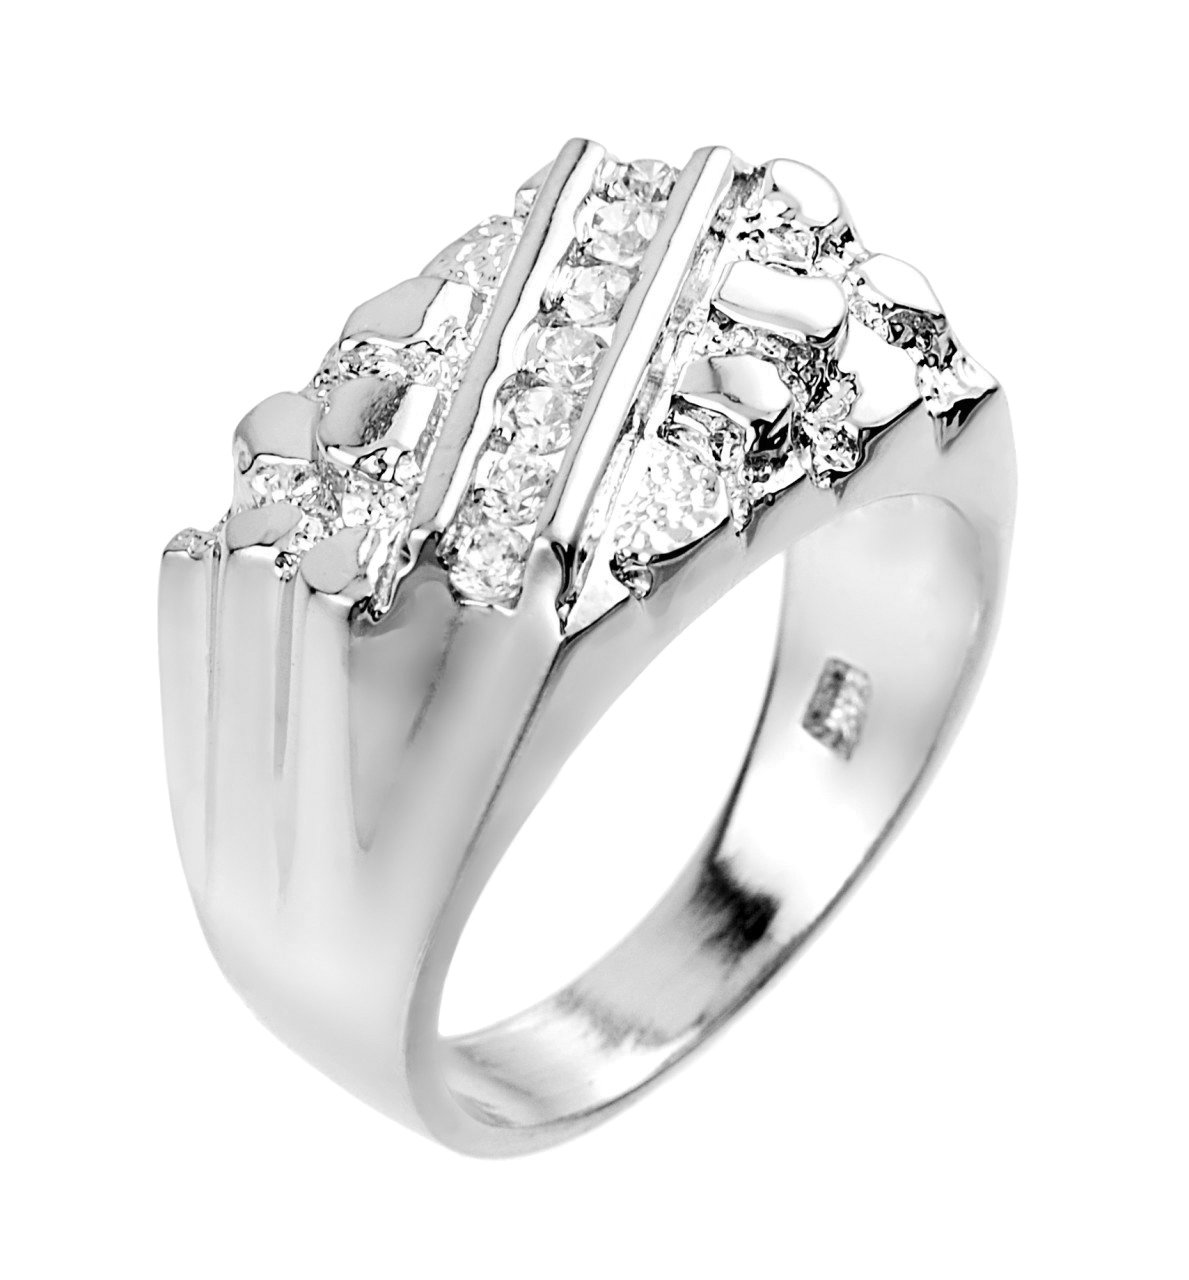 Fine Sterling Silver Nugget Ring with Cubic Zirconias (Size 12.25)